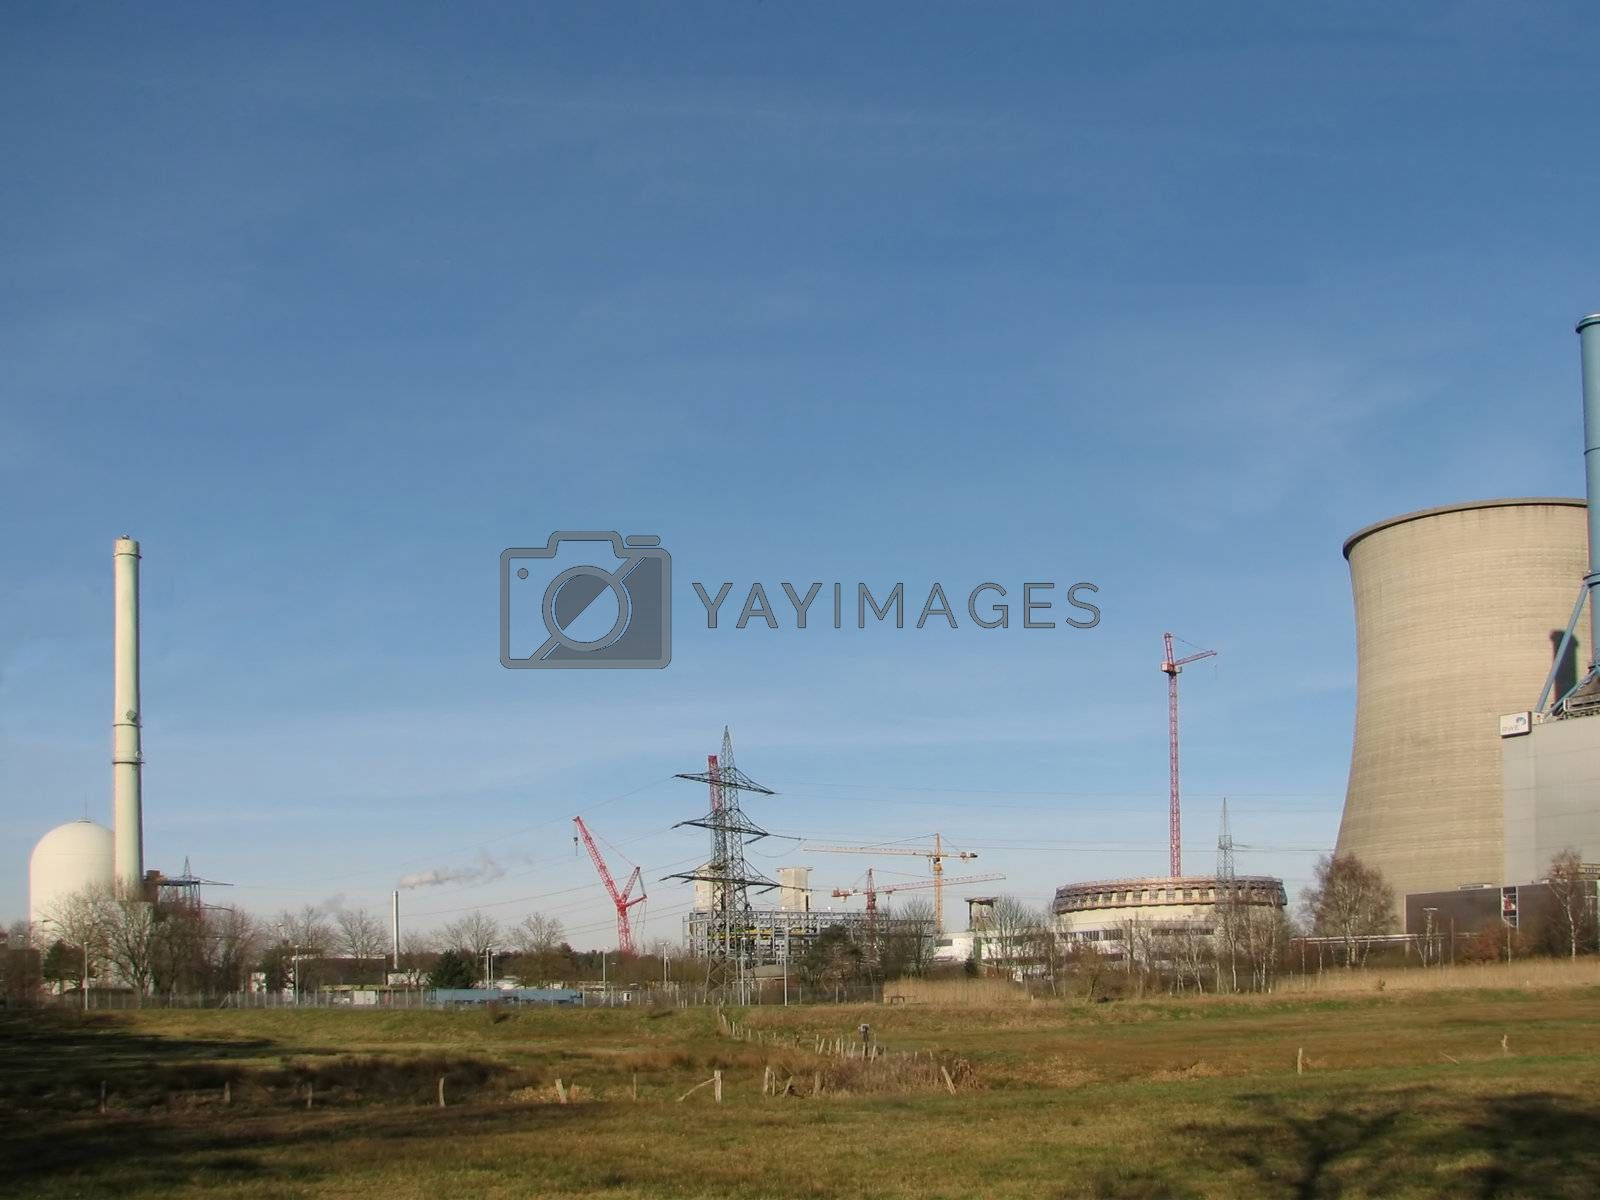 natural gas power plant on the right and nuclear power plant on the left, Lingen, Germany, 2007